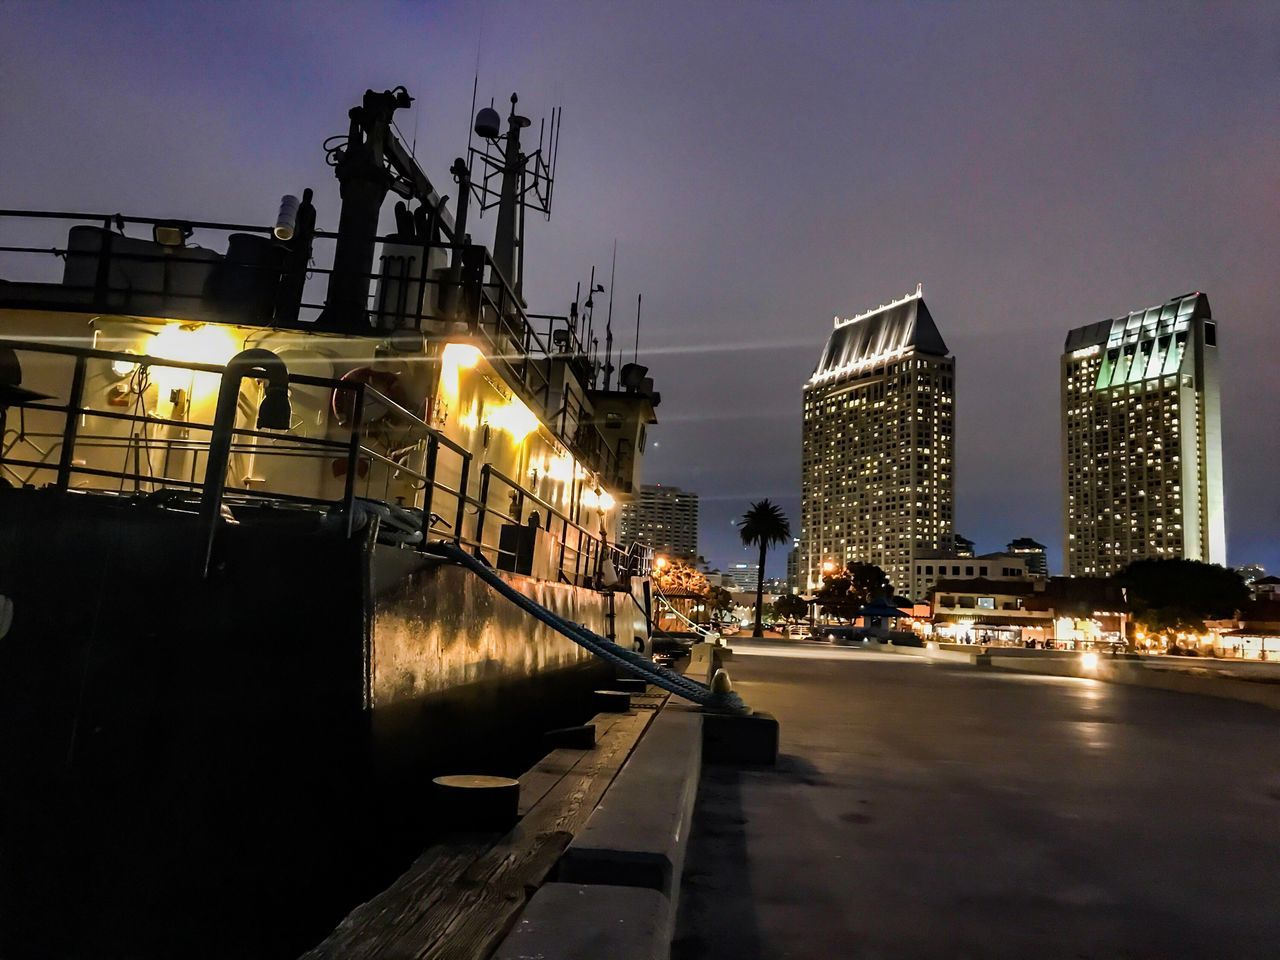 Architecture Built Structure Building Exterior Illuminated Night City Transportation Outdoors Sky Water No People Clear Sky United States California Boats Bay Harbor Sandiego Waterfront Cityscape City Tower Skyscraper Modern Urban Skyline